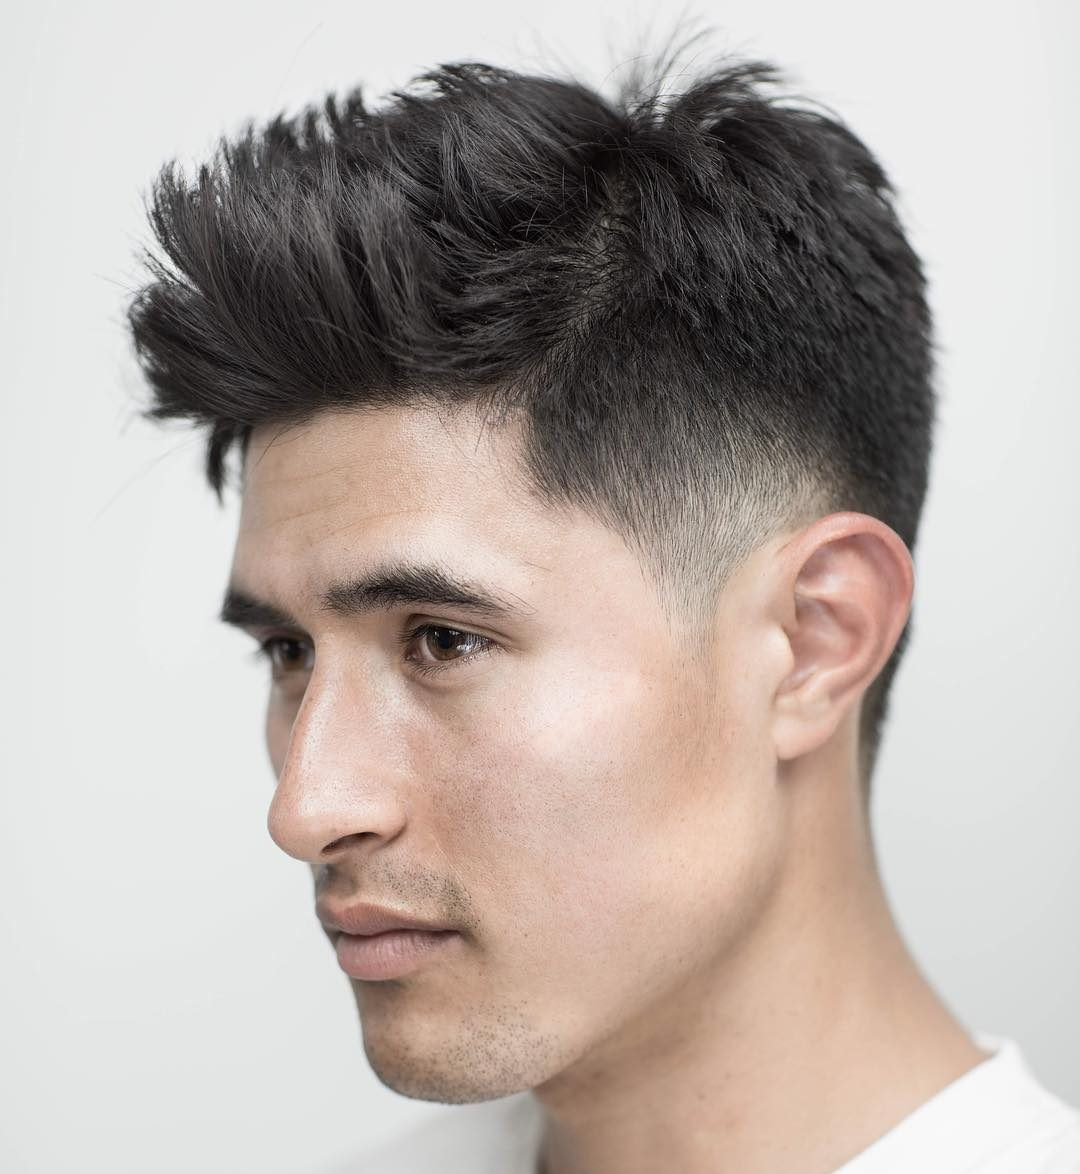 45 Cool Men\'s Hairstyles To Get Right Now (Updated)